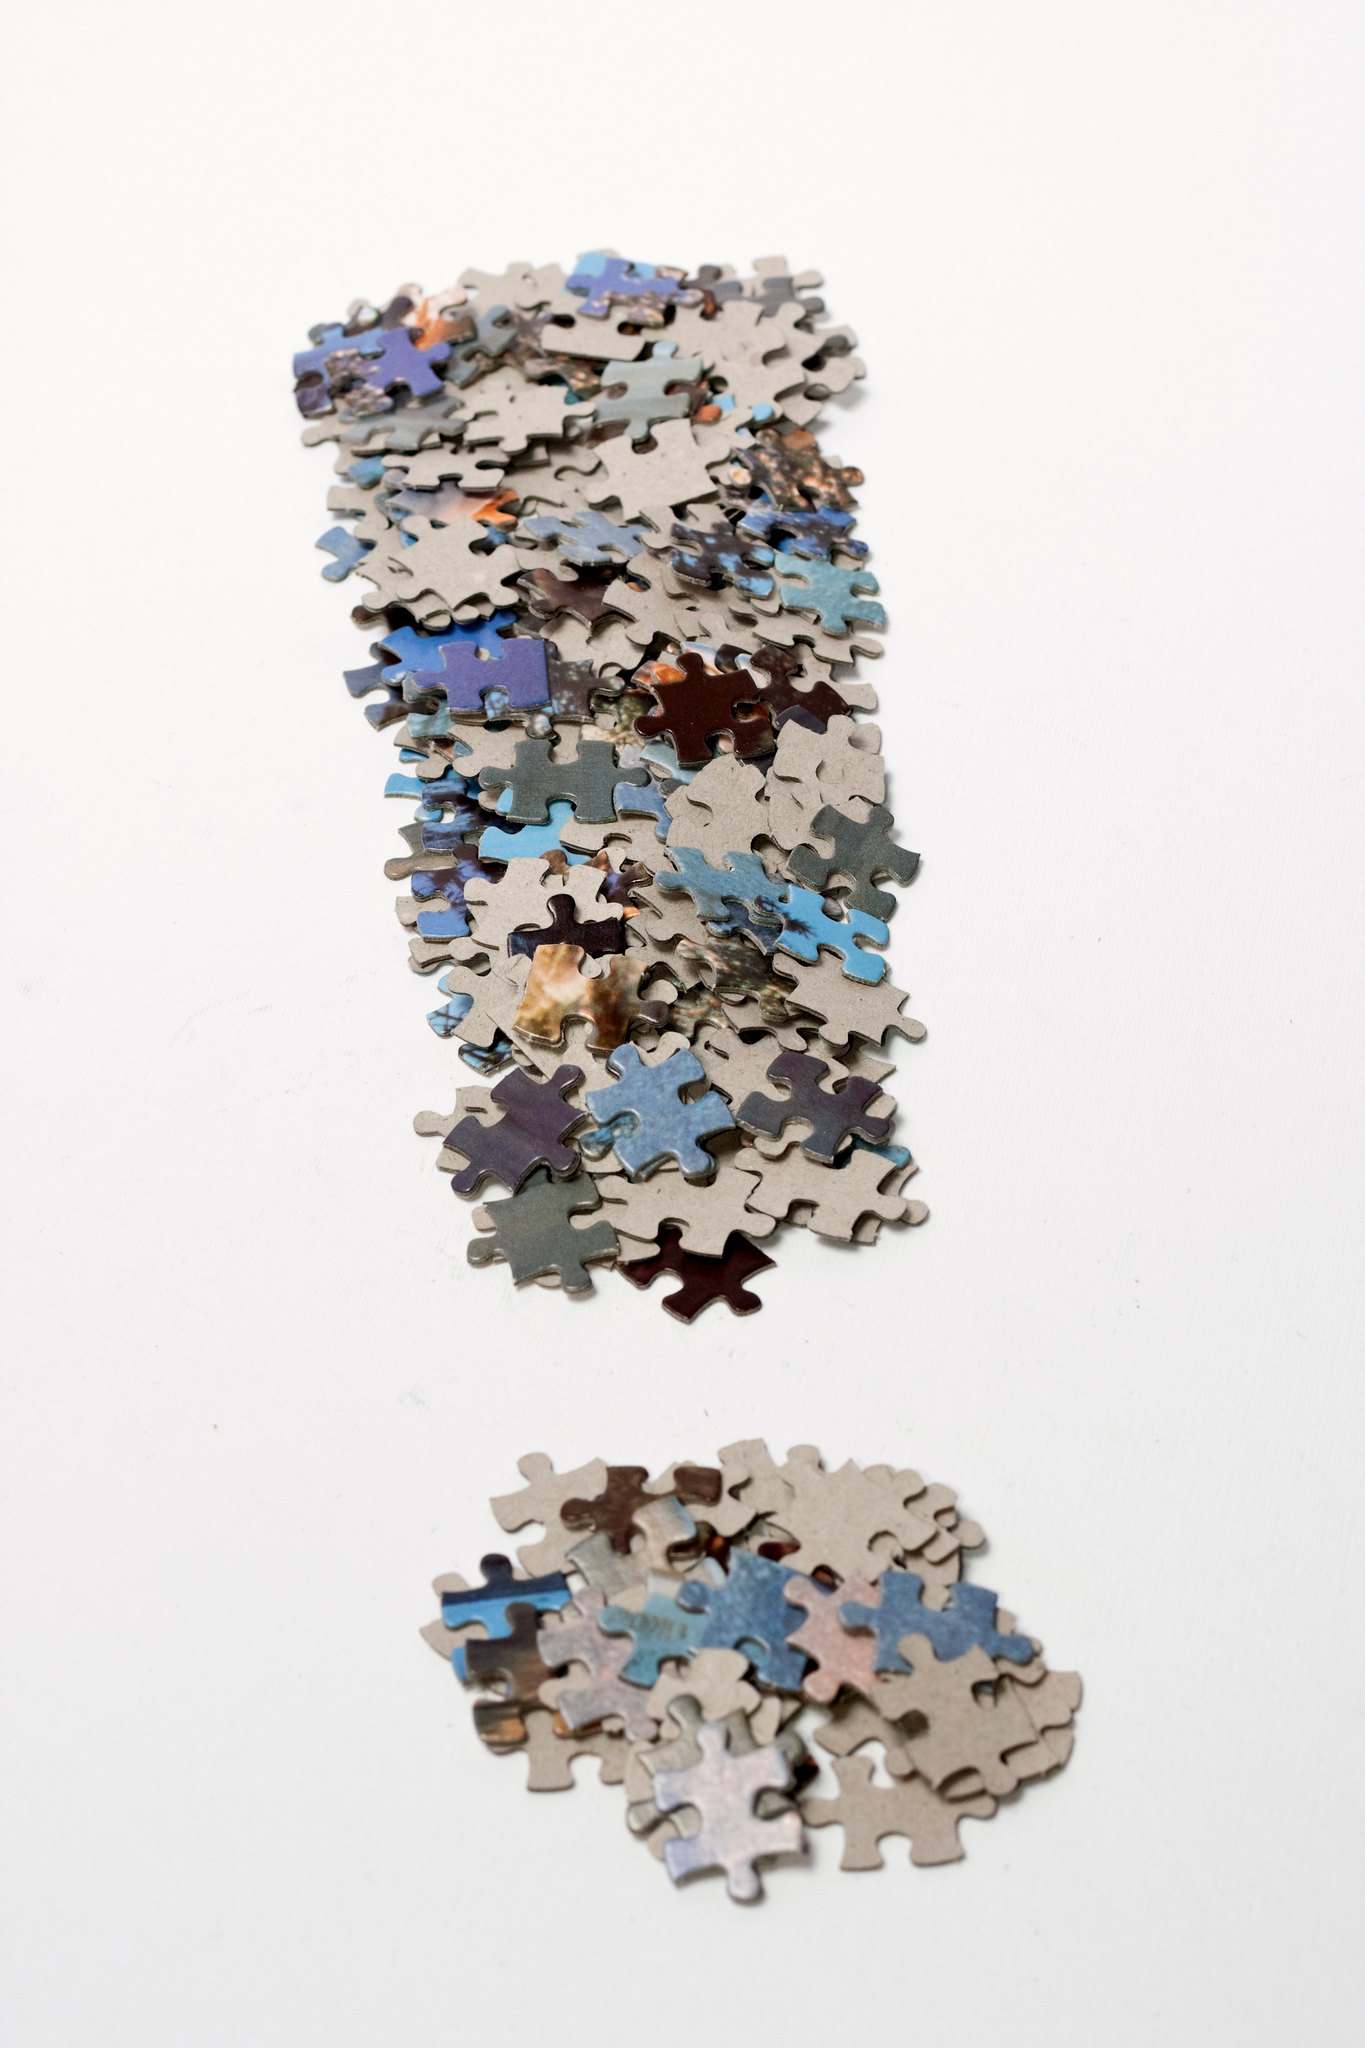 A fat exclamation mark consisting of blue and violet jigsaw puzzle pieces with a gray carboard back on a white background.